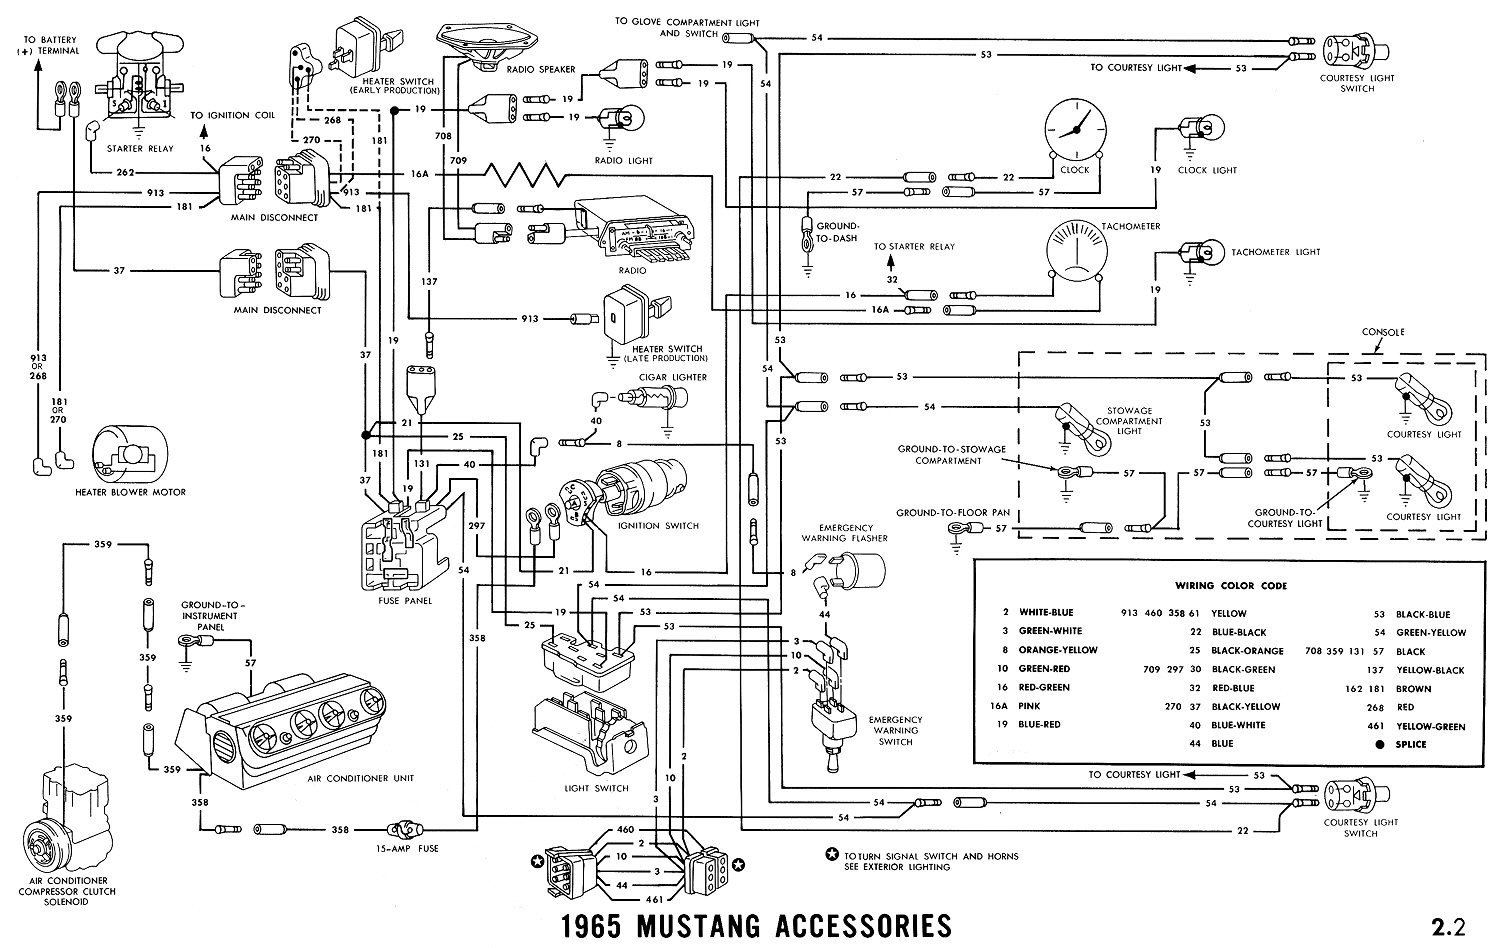 1965i 1967 mustang wiring diagram 67 mustang solenoid wiring diagram 1965 mustang turn signal wiring diagram at soozxer.org